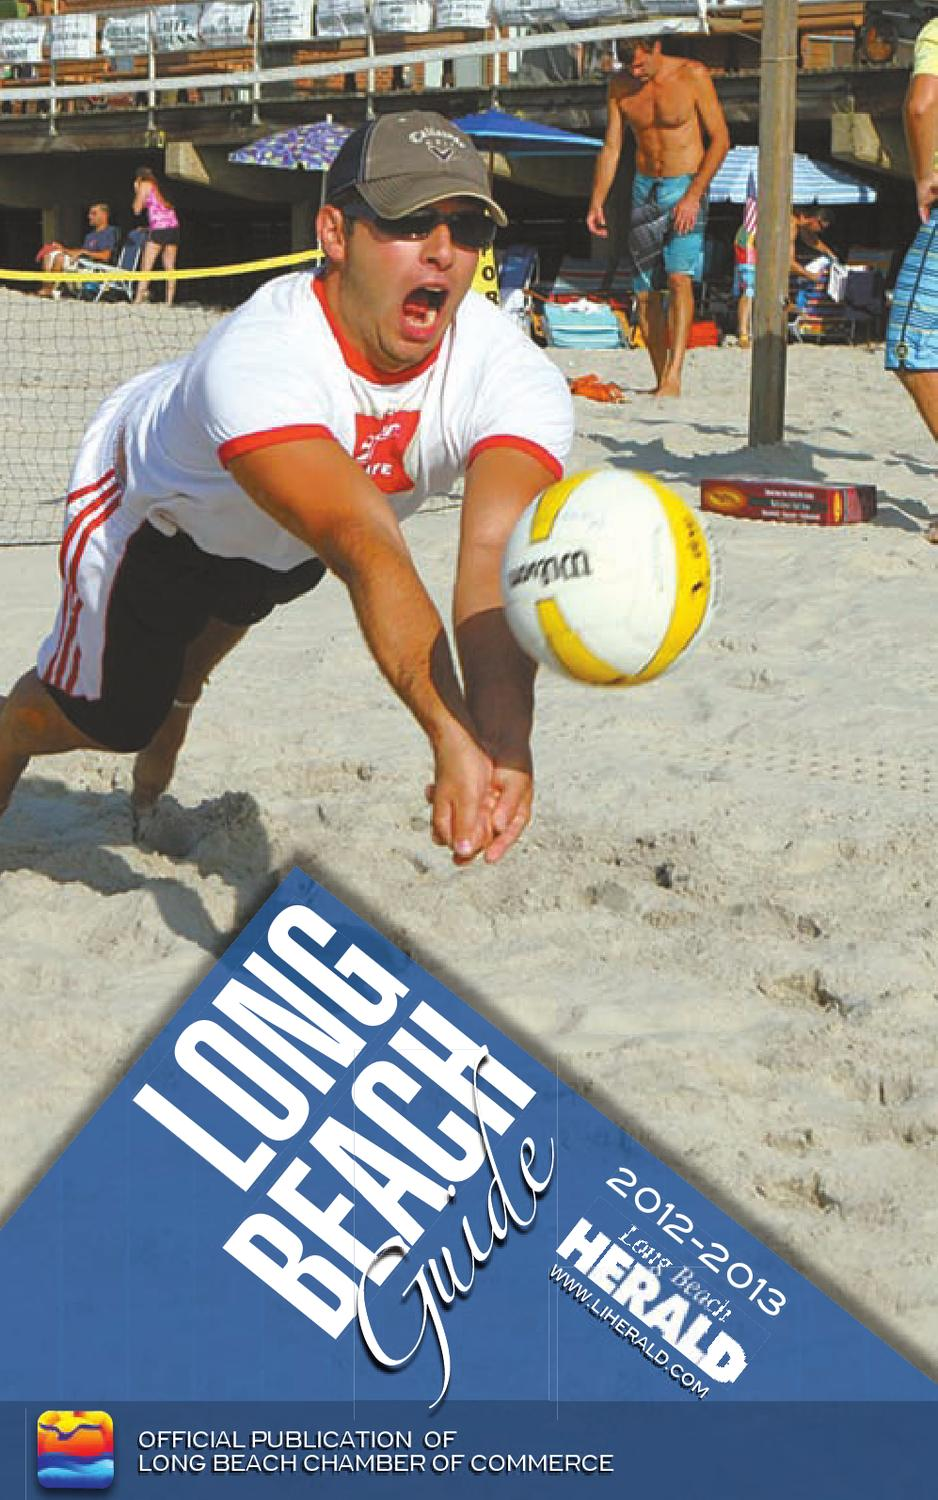 Long beach guide 2012 by richner communications inc issuu aiddatafo Images